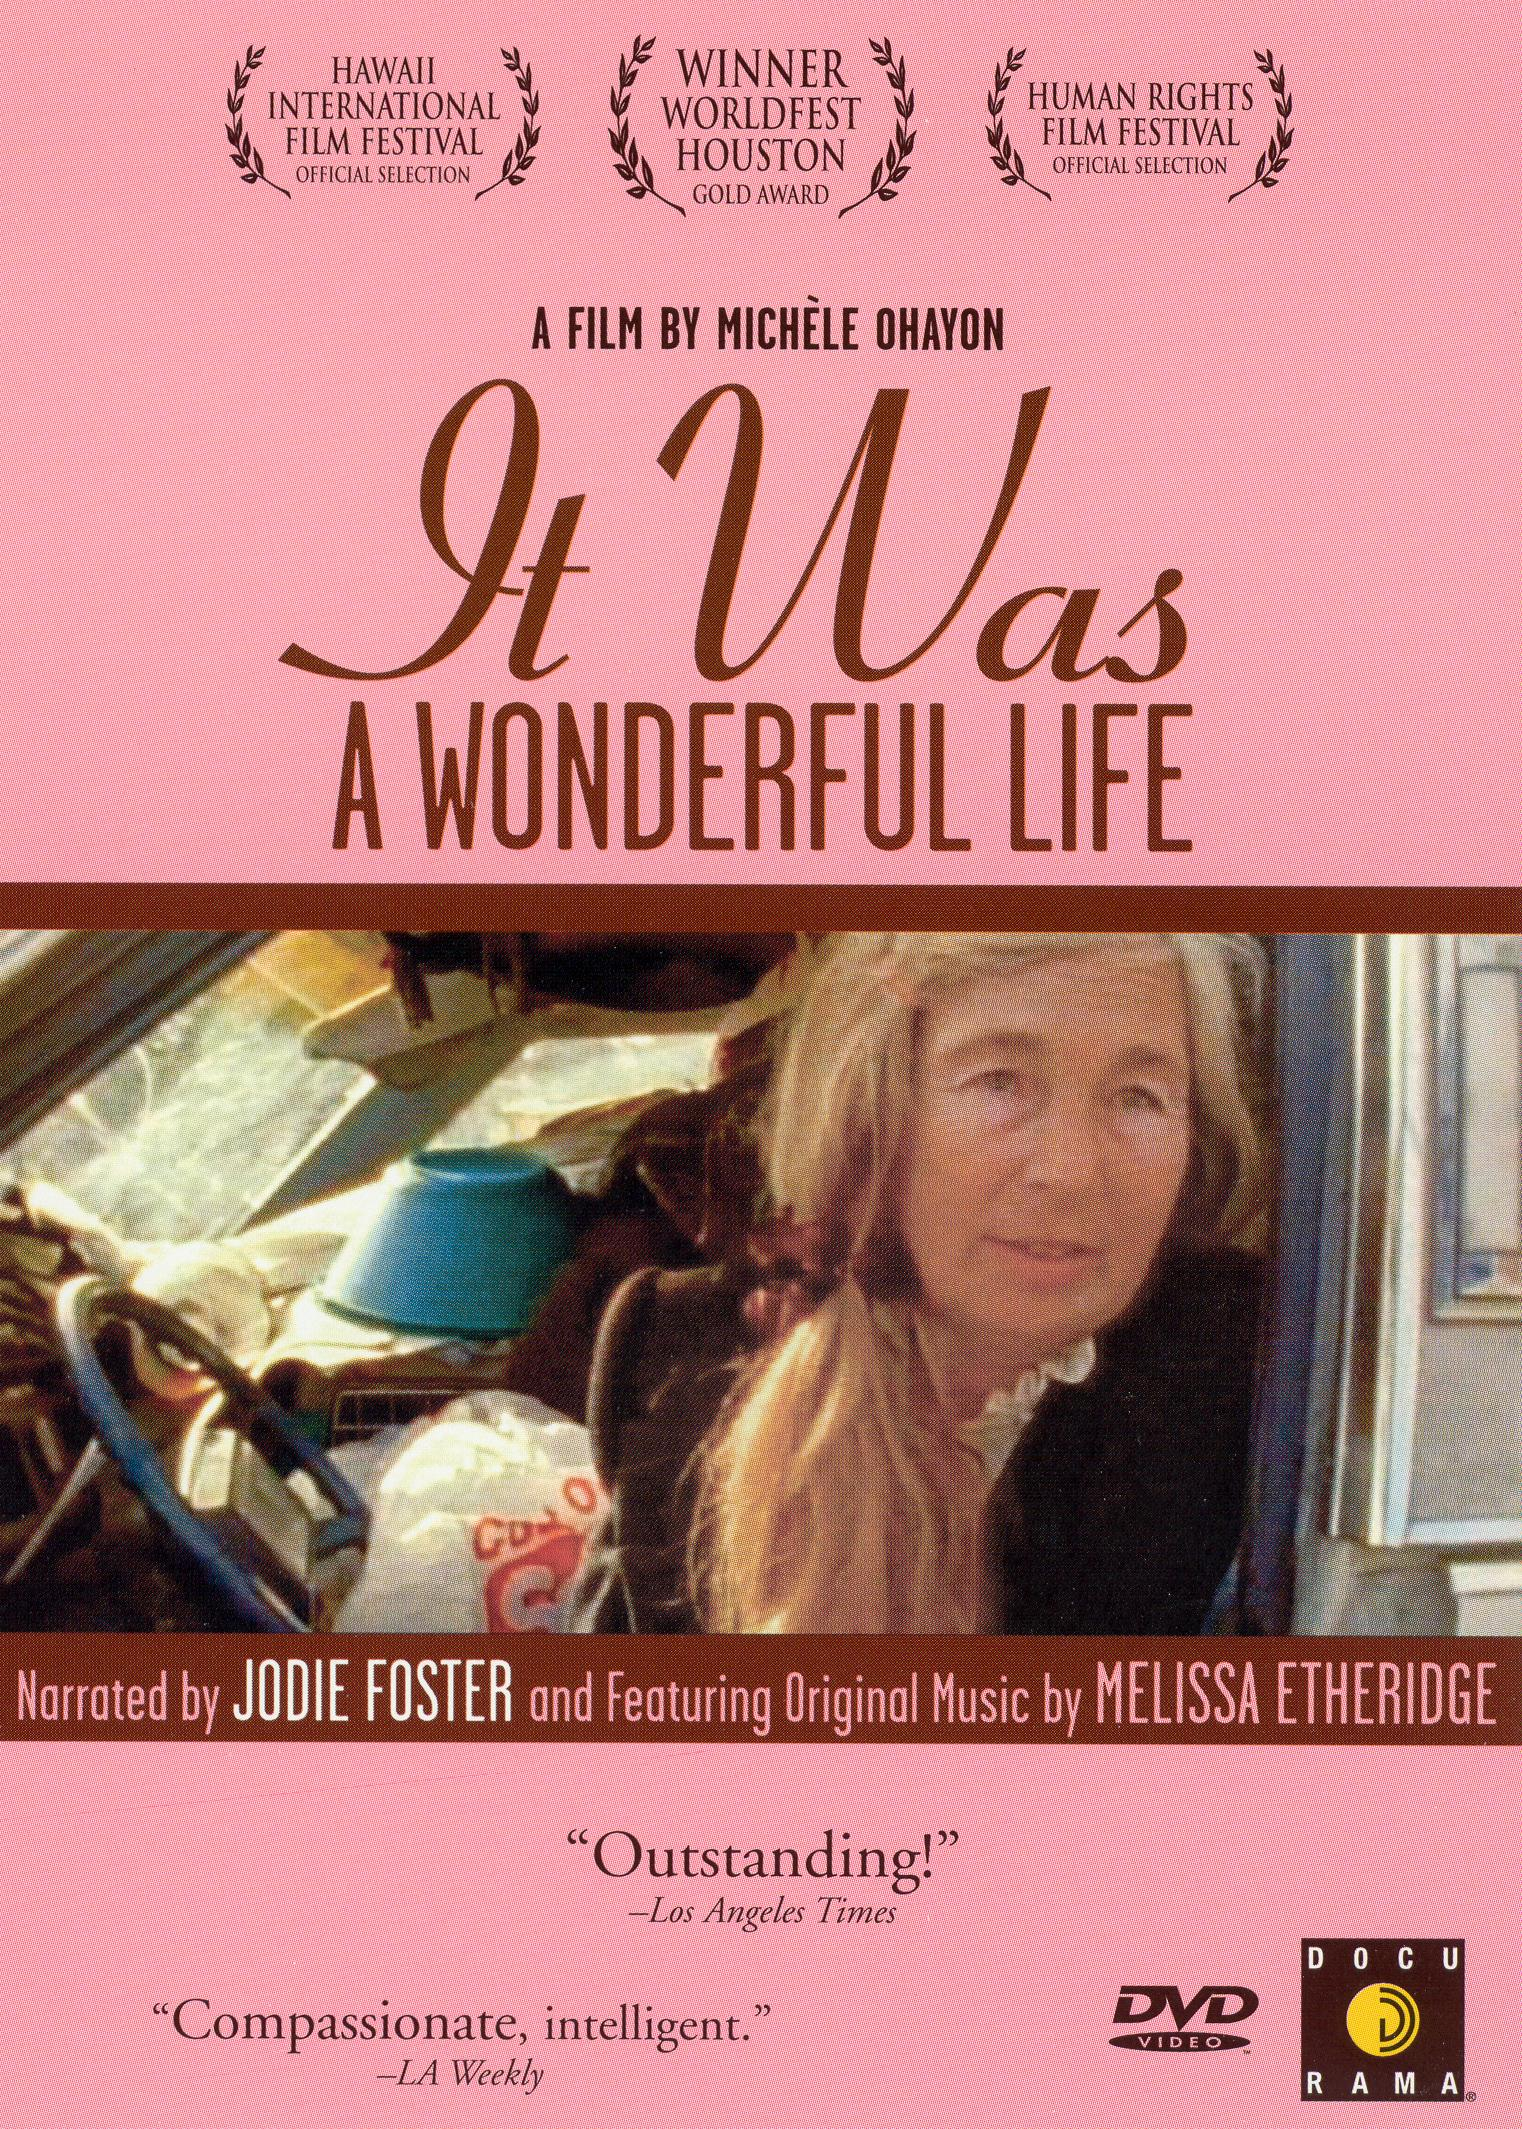 It Was A Wonderful Life 1993 Mich Le Ohayon Synopsis Characteristics Moods Themes And